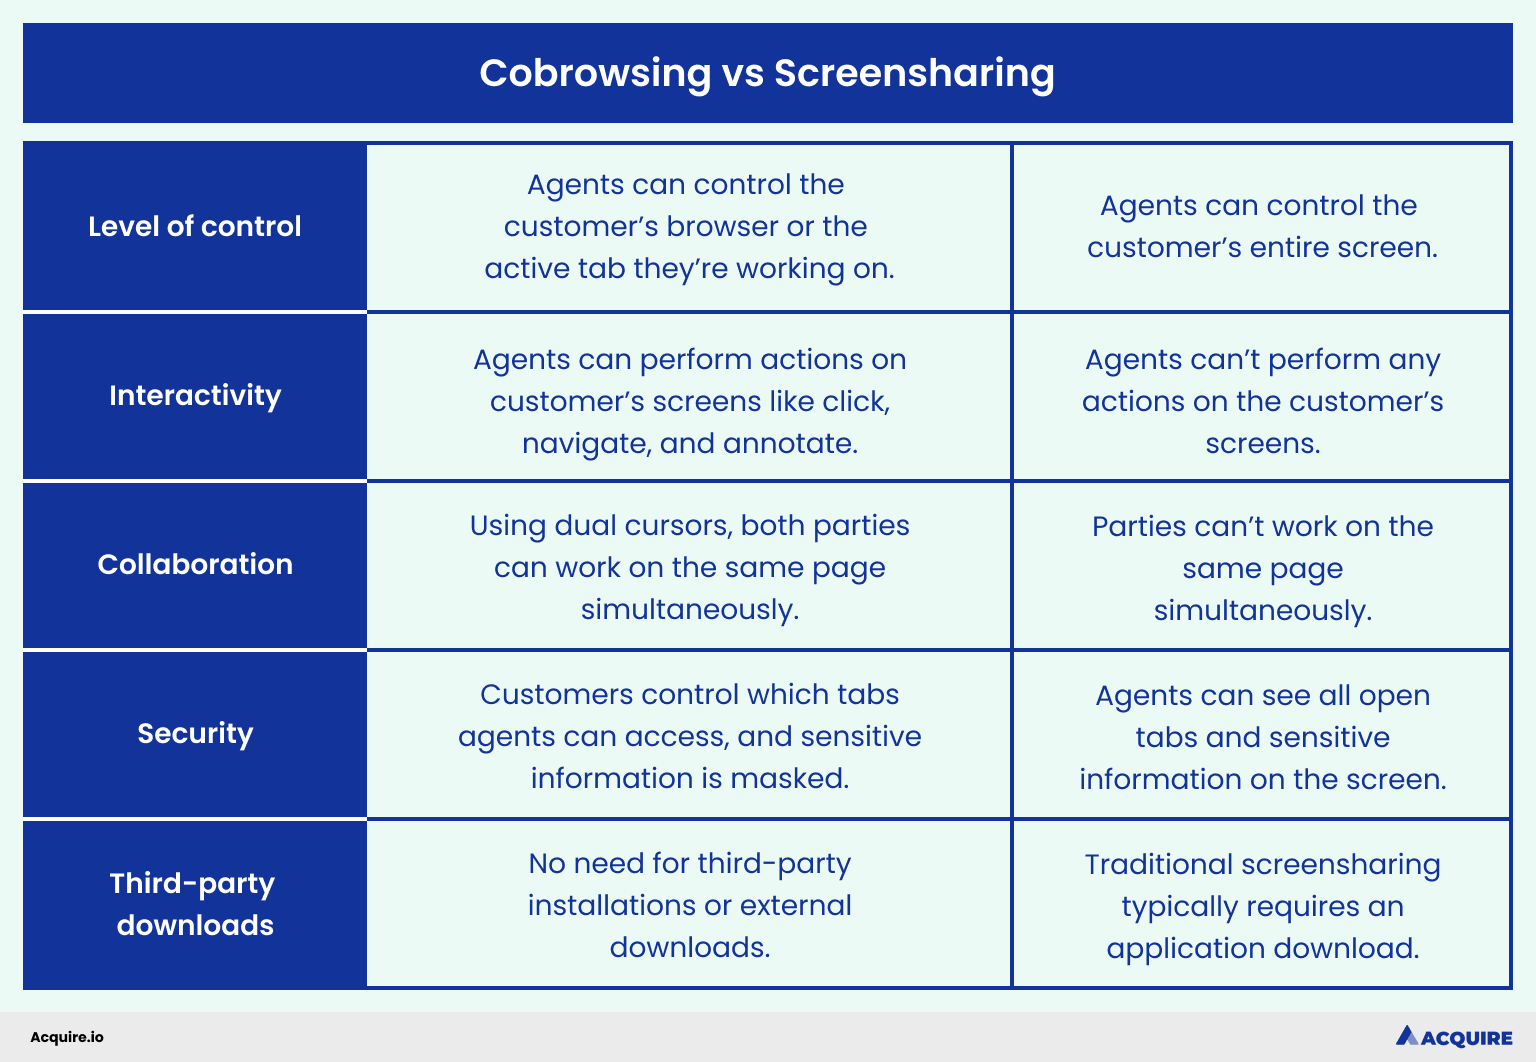 Table of differences between cobrowsing and screen-sharing